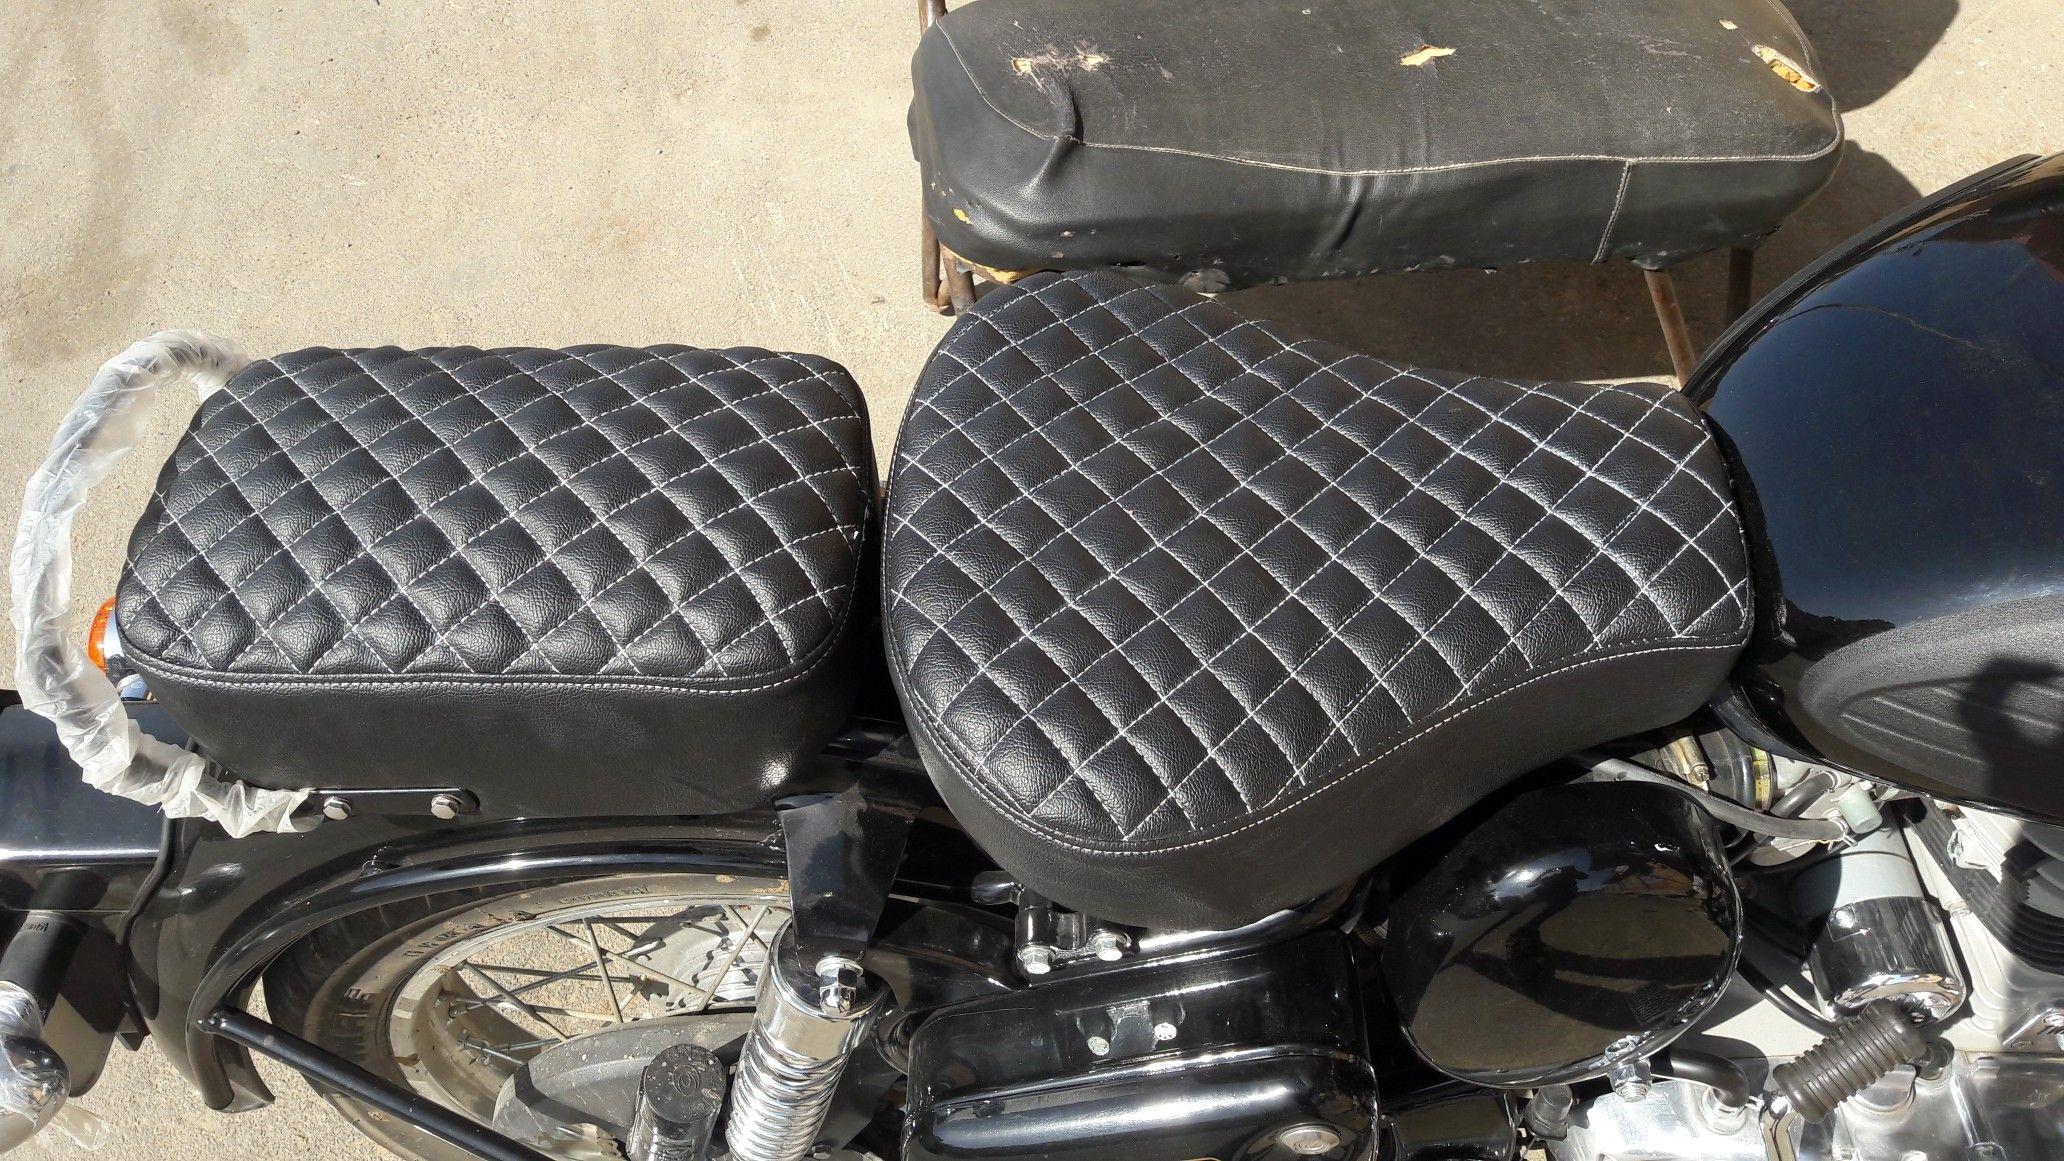 Enjoyable Royal Enfield Classic 350 Leather Seat Cover With Perfect Evergreenethics Interior Chair Design Evergreenethicsorg